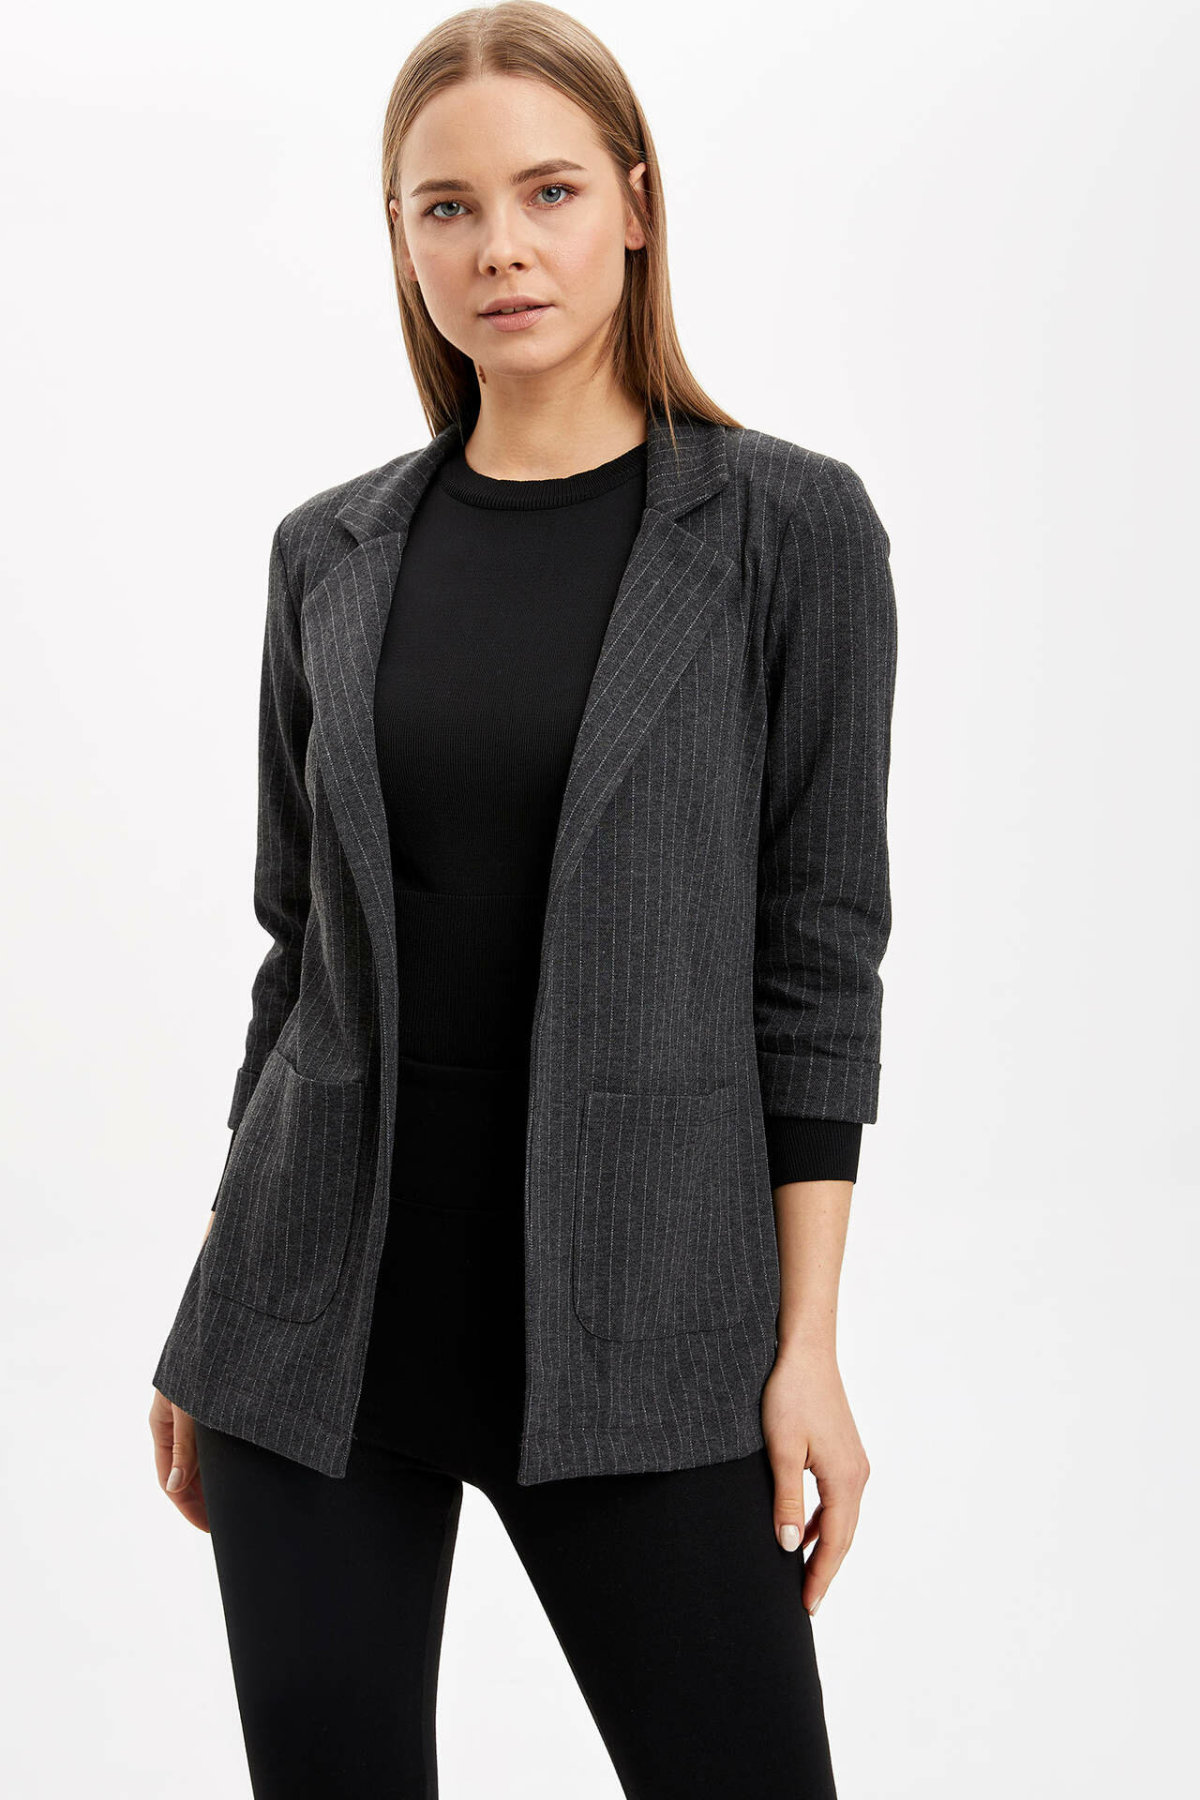 DeFacto Woman Cardigan Bolero Coats Office Lady OL Coats Women's Mid-sleeve Short Jacket Coats-N1333AZ20SP